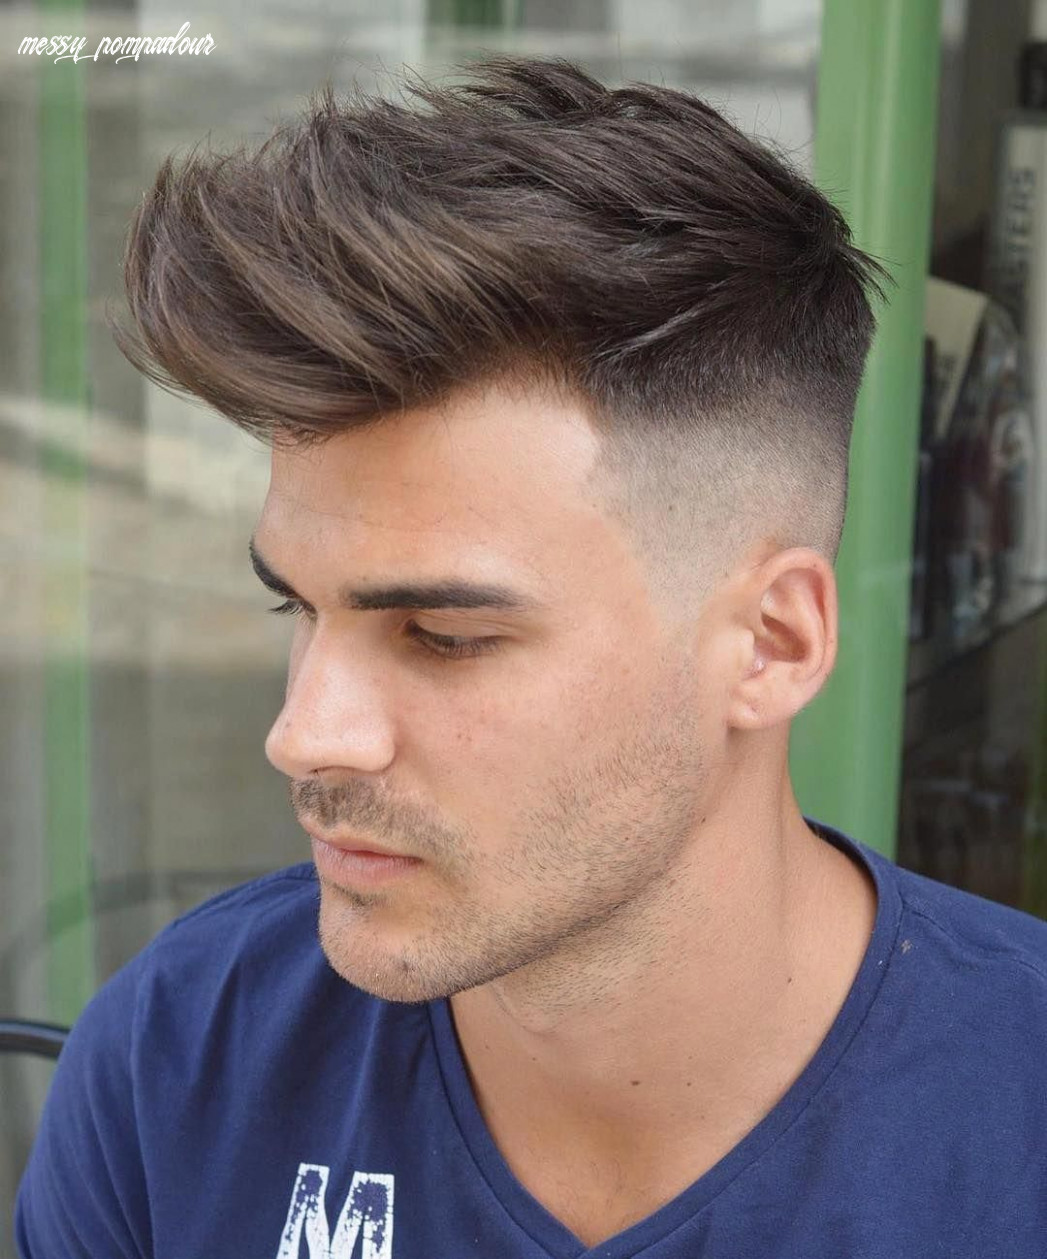 Skin fade messy pompadour undercut #menshairstyles | mens